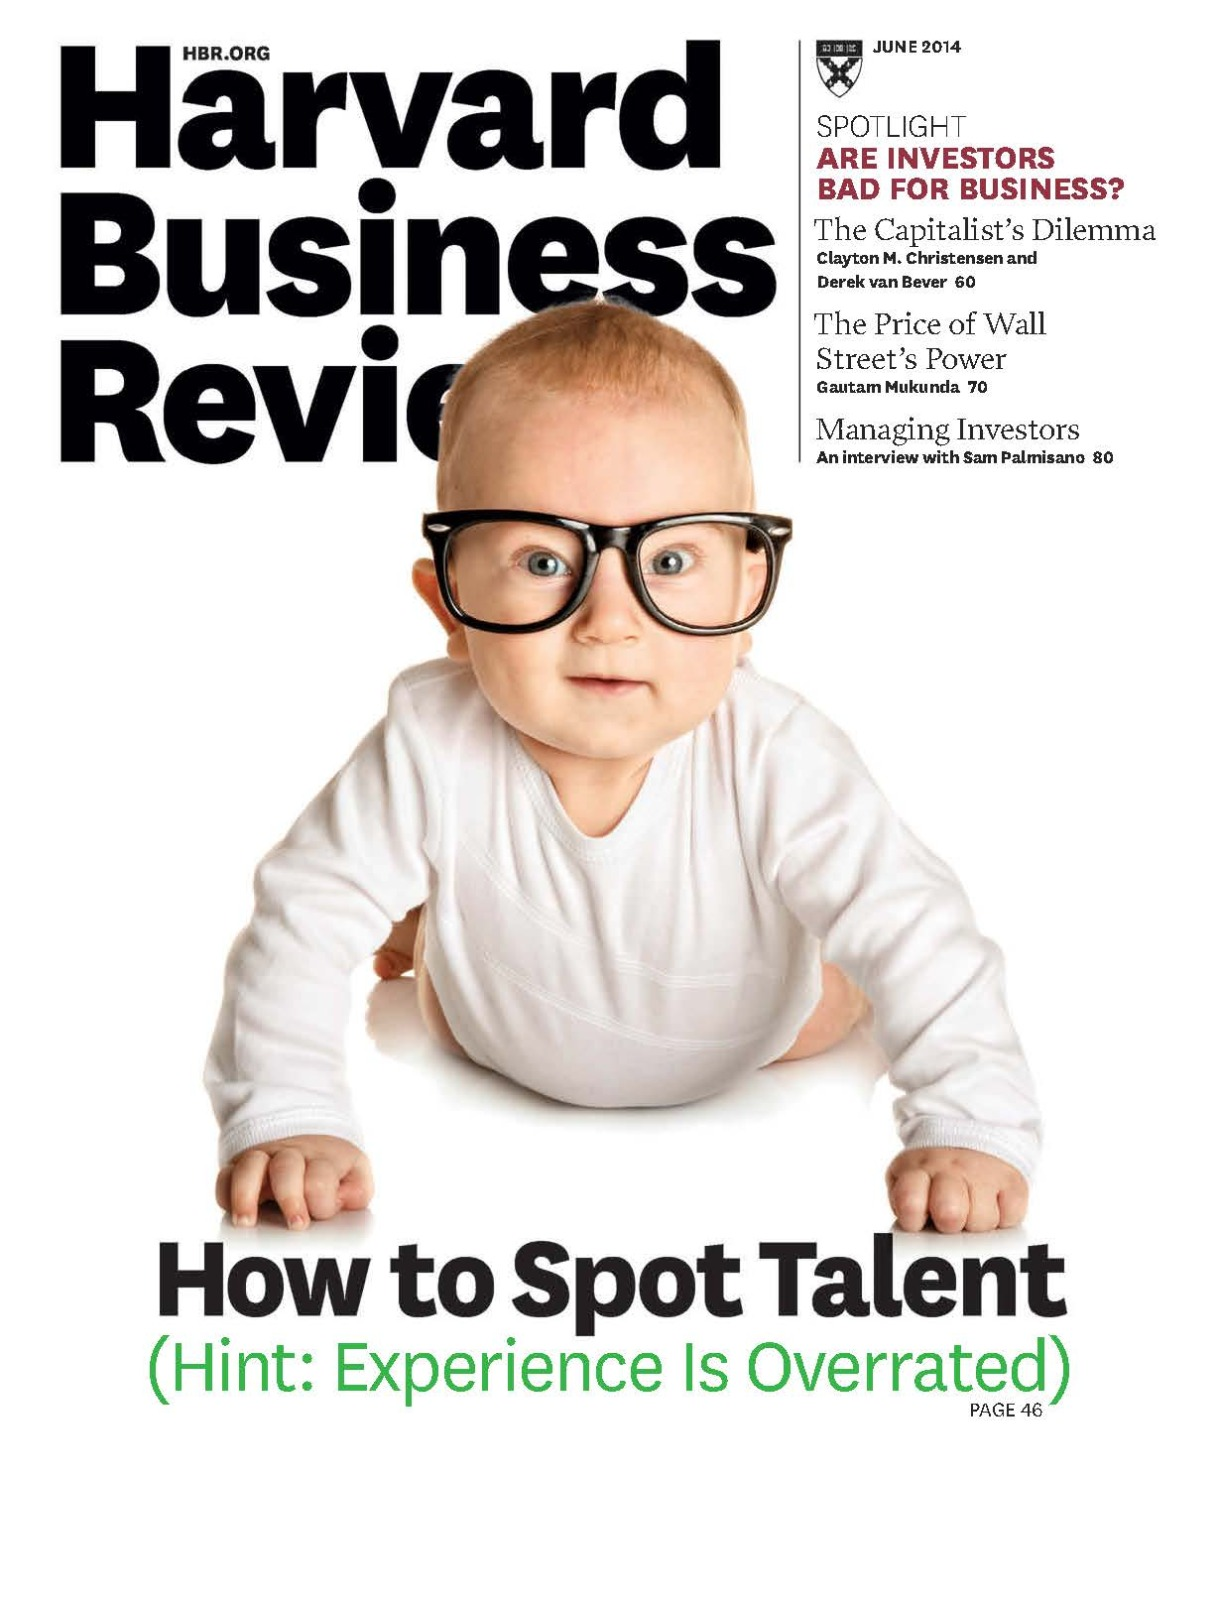 cover of Harvard Busines Review issue featuring a baby wearing glasses and a caption that reads 'How to Spot Talent' with a sub-caption that reads 'Hint: Experience Is Overrated'